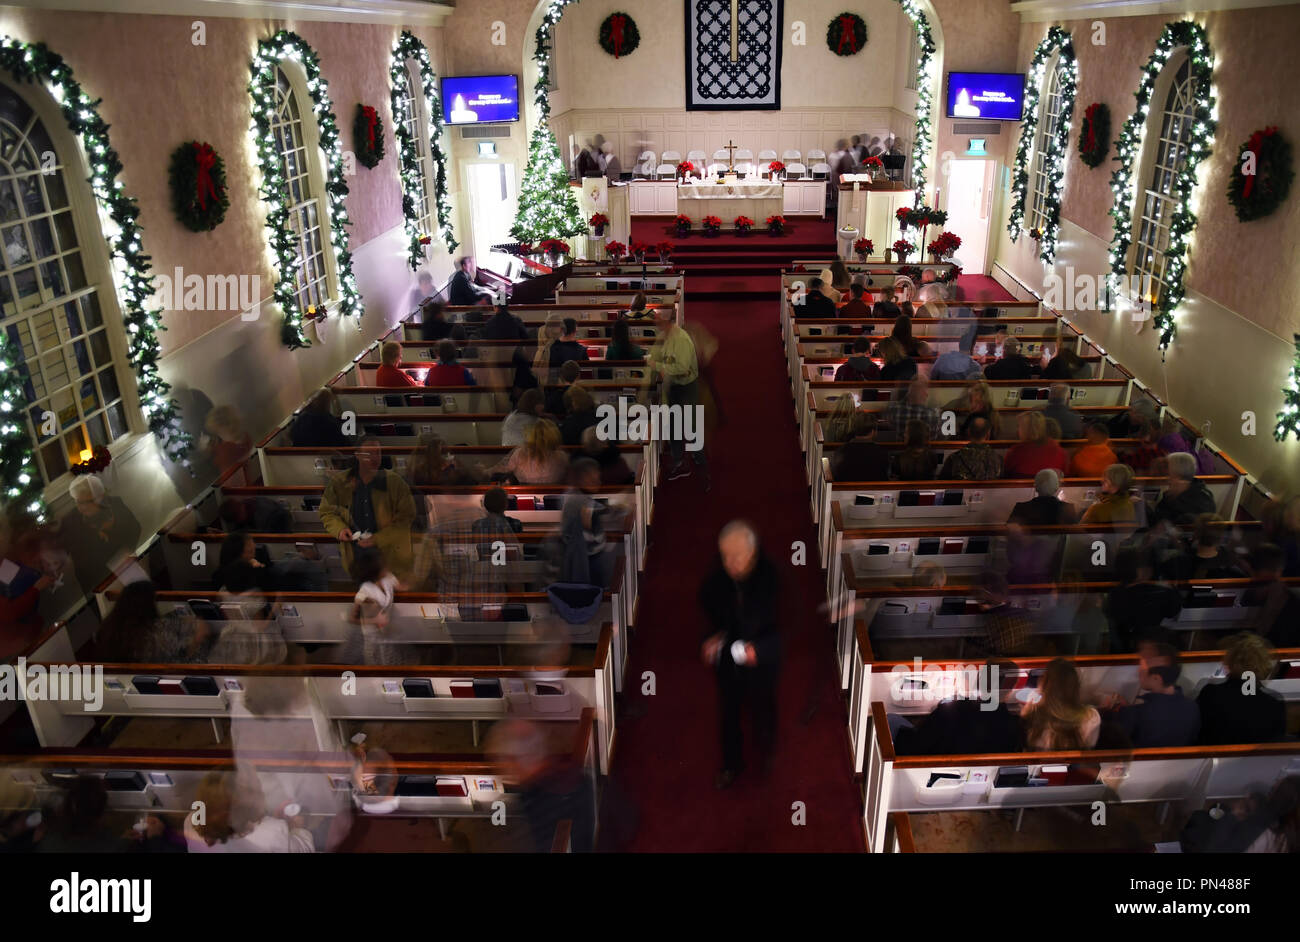 KALISPELL, MONTANA, USA - December 24, 2017: Parishners at Epworth United Methodist Church leave the pews after a Christmas Eve candlelight service Stock Photo